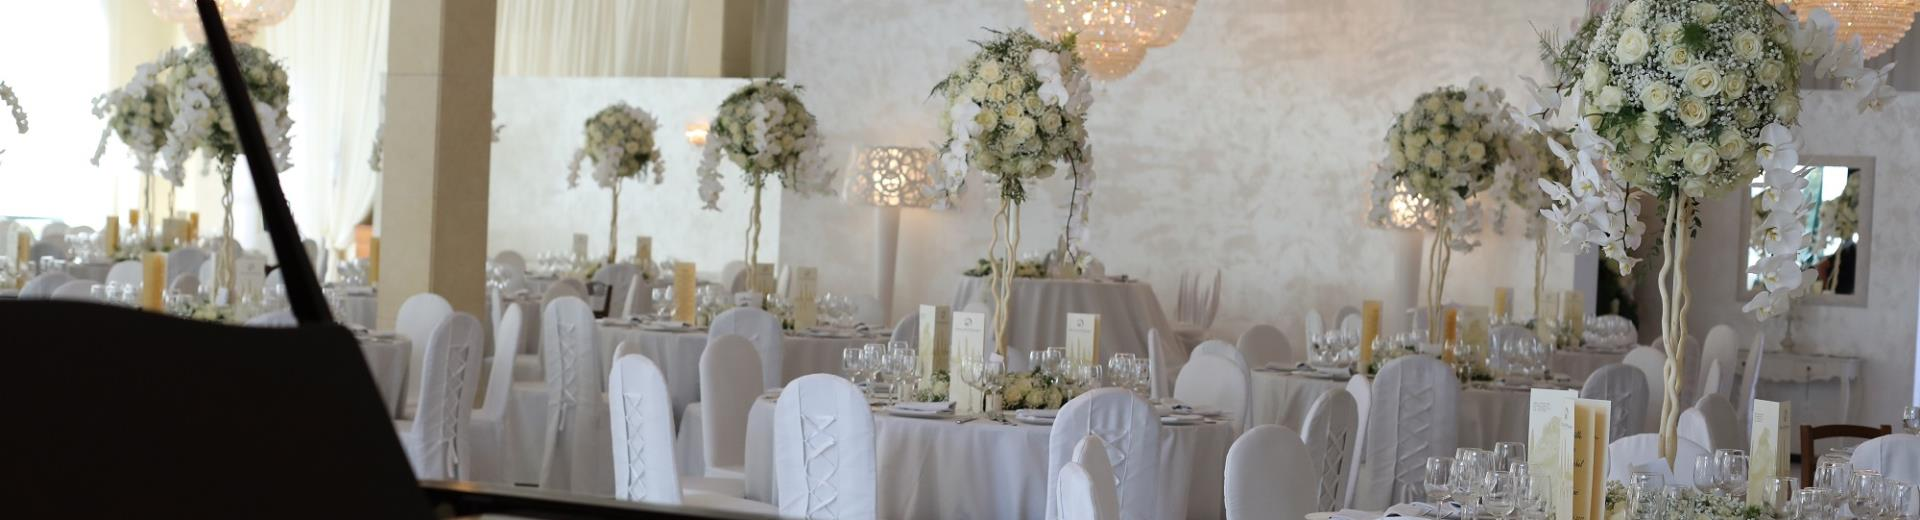 Organise your banquet or event at the Best Western Hotel Rocca Cassino